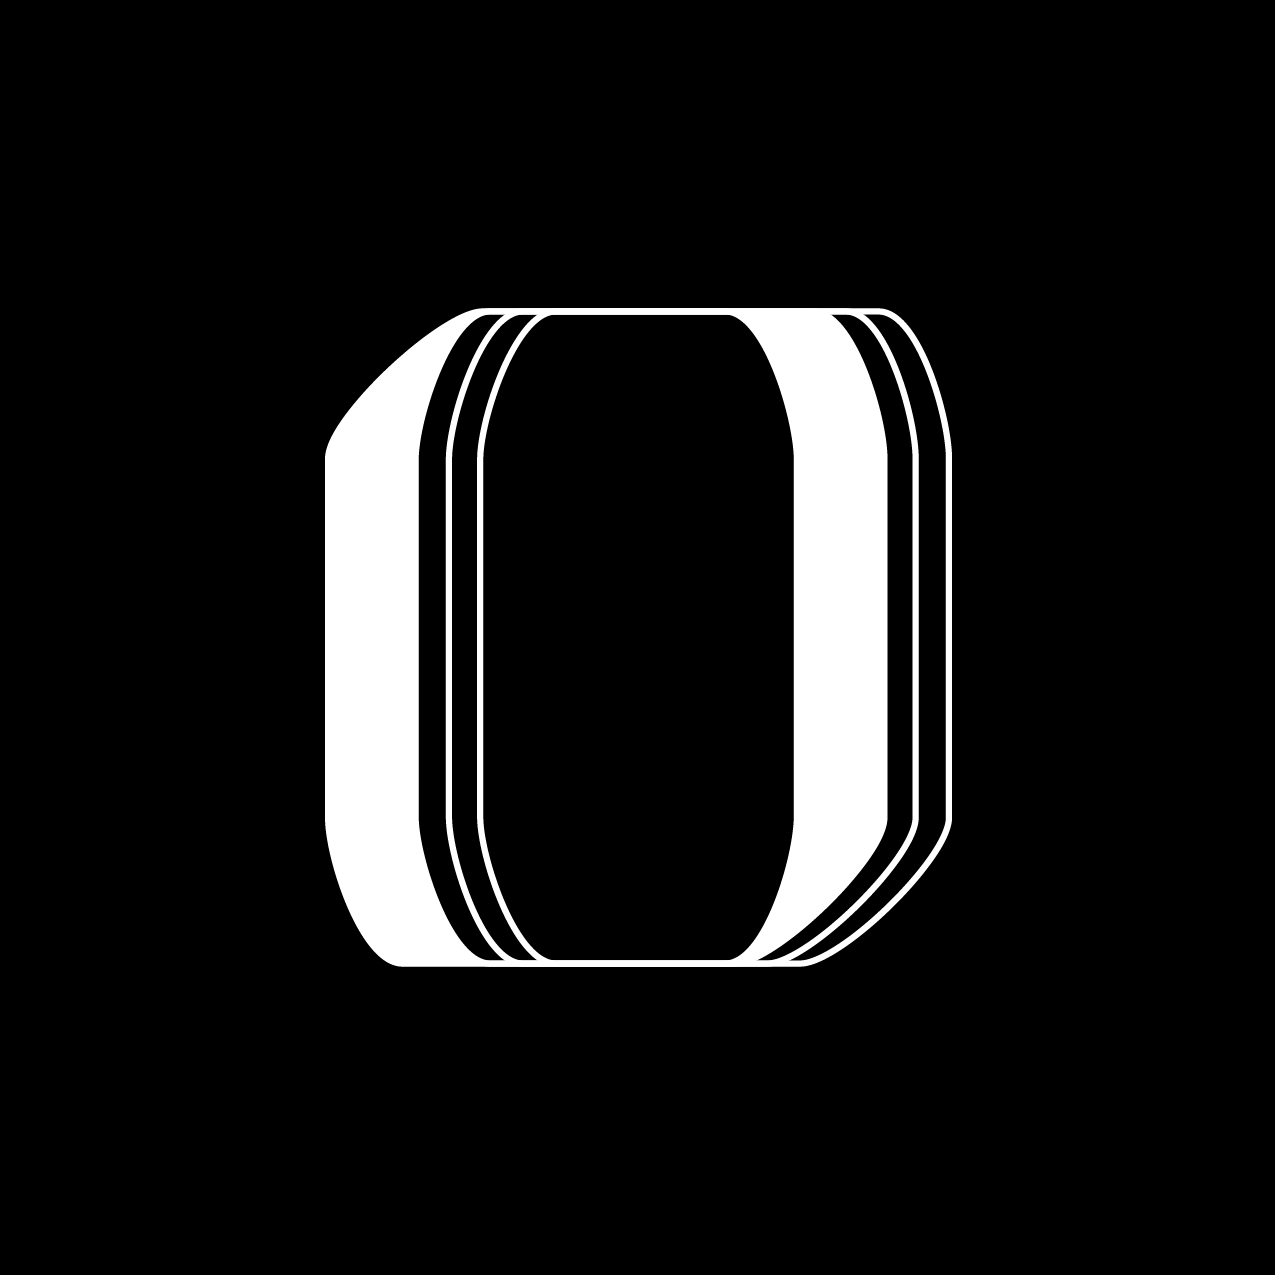 Letter O14 Design by Furia